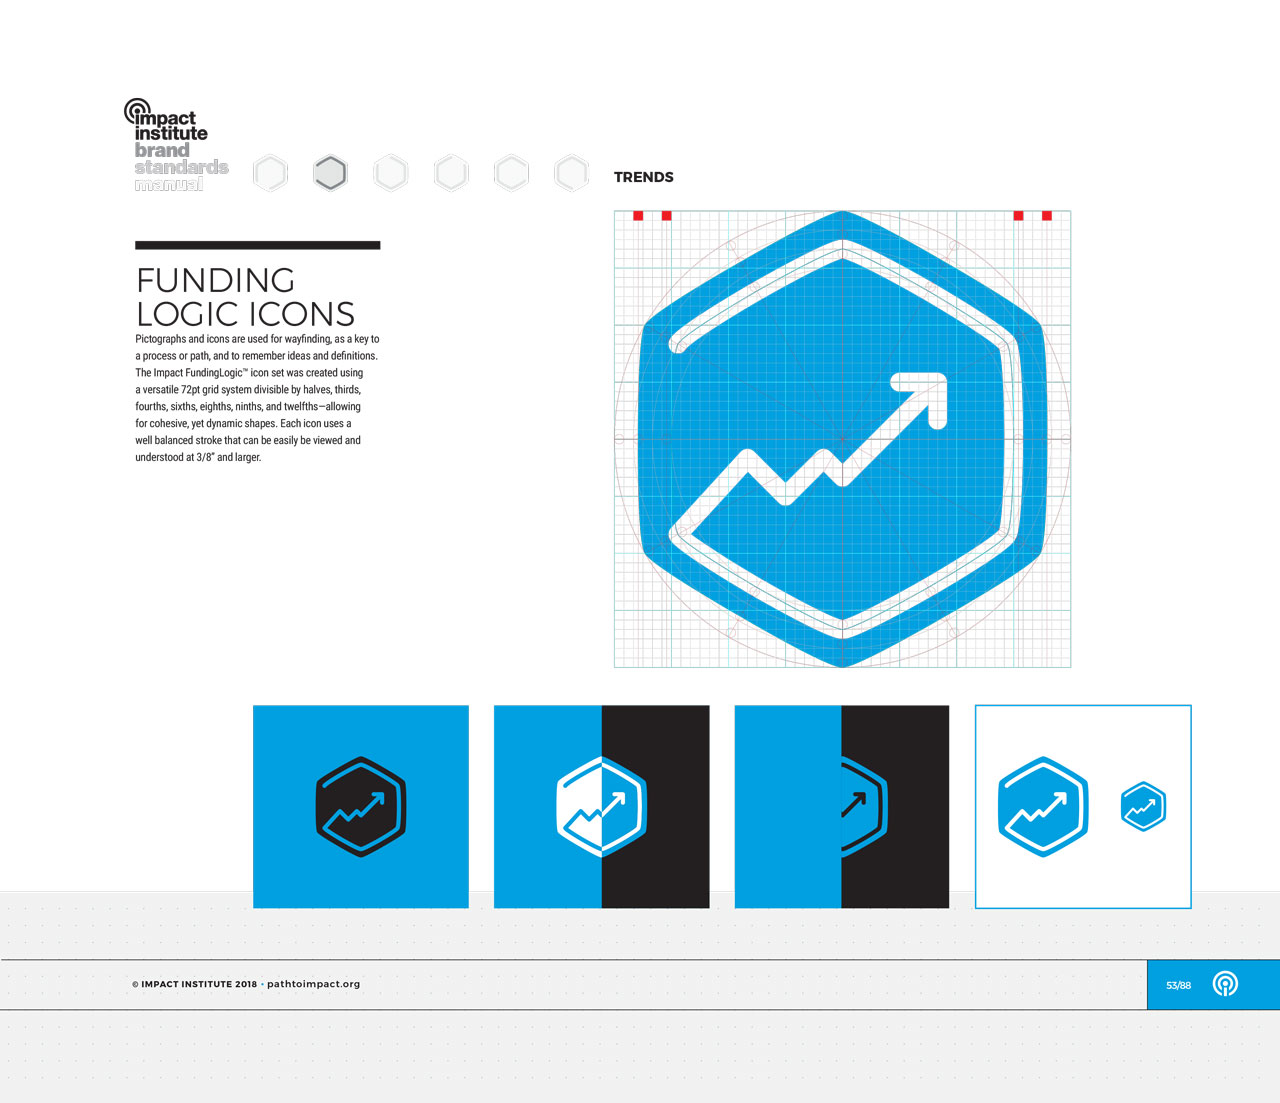 Single page from brand identity manual displaying blue, hexagonal trends icon